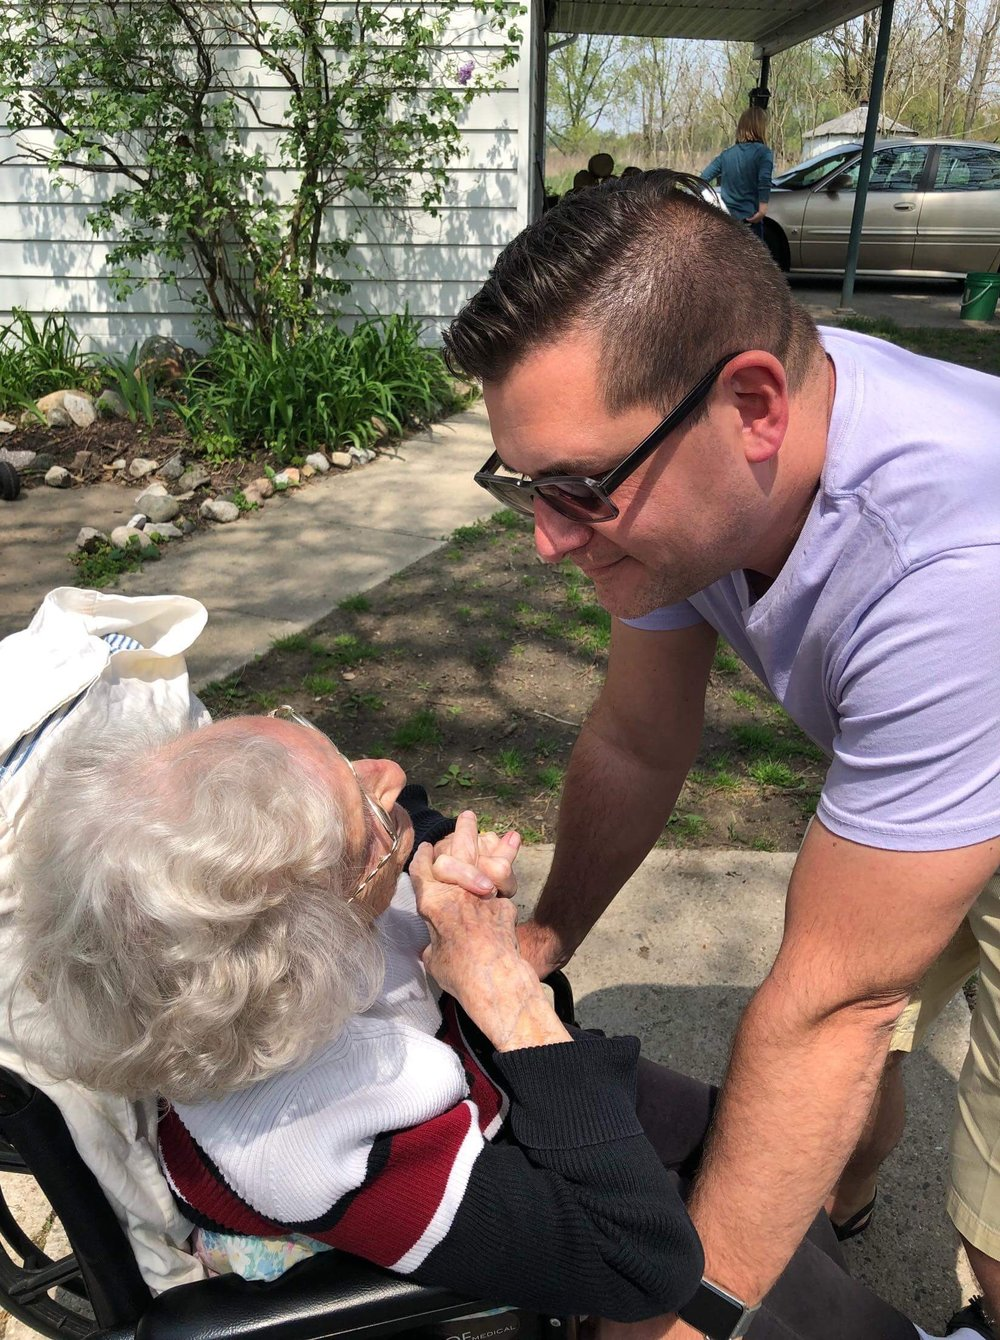 After a day with my beautiful mother, I was also able to visit my grandmother on Mother's Day.